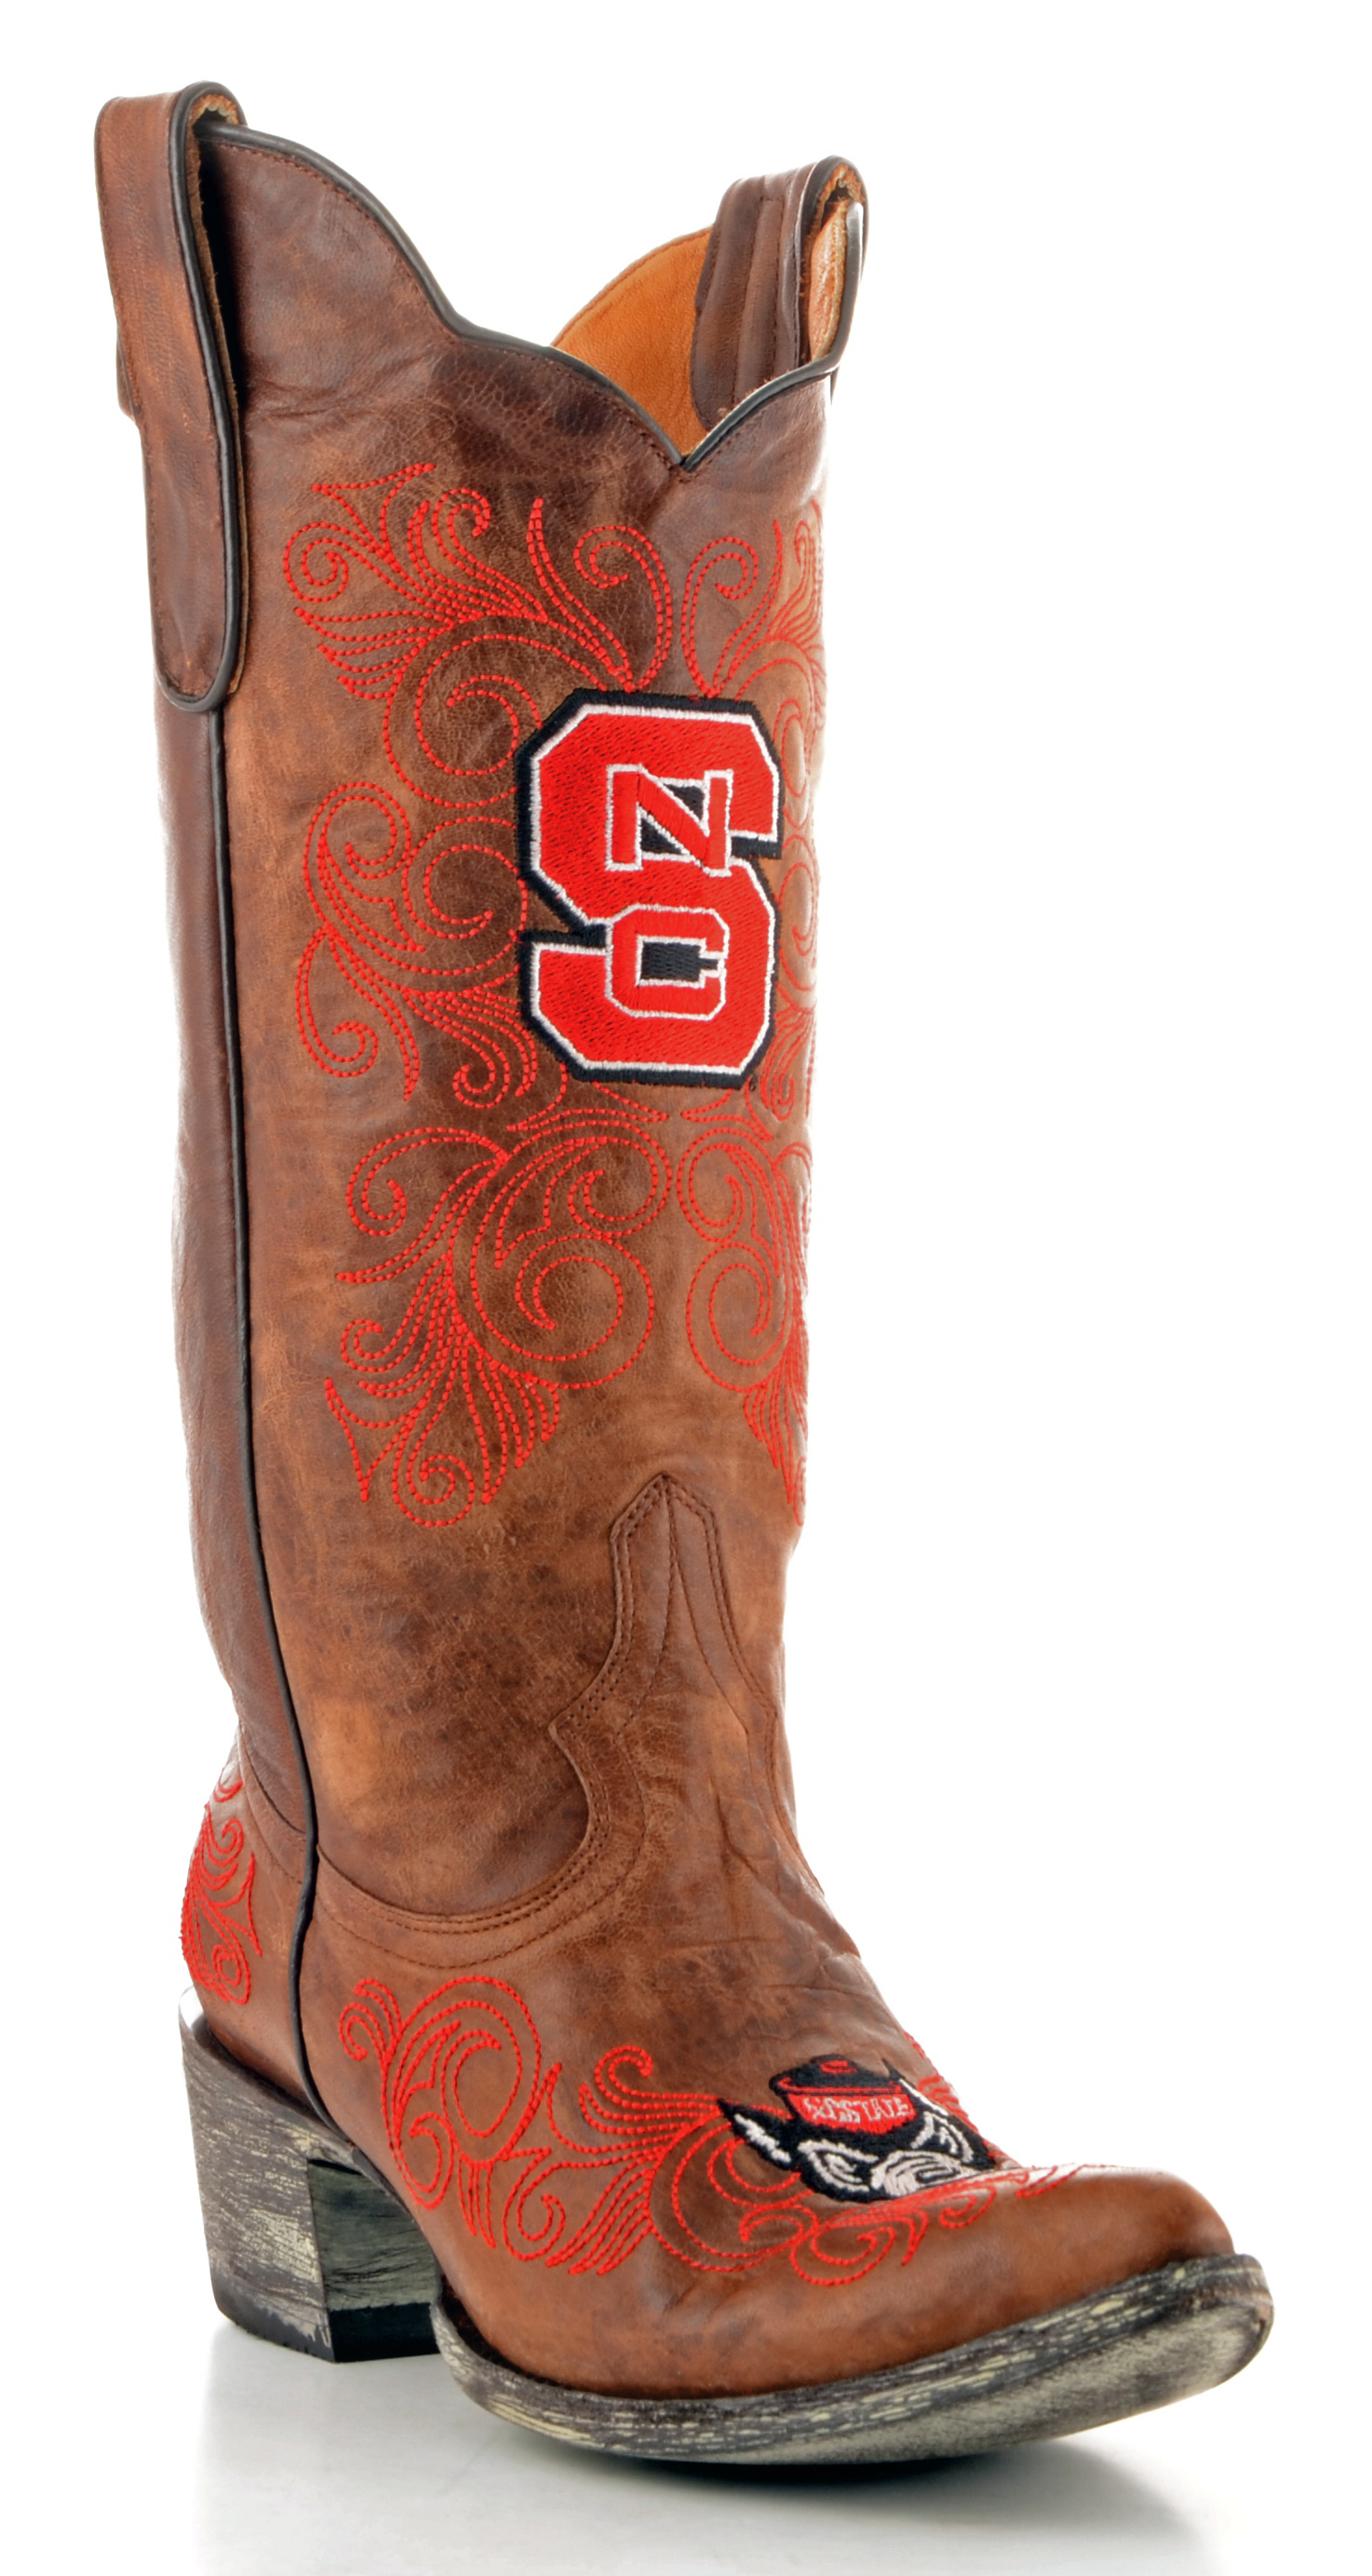 "Gameday Boots Womens 13"" Tall Leather N Carolina State Cowboy Boots by GameDay Boots"